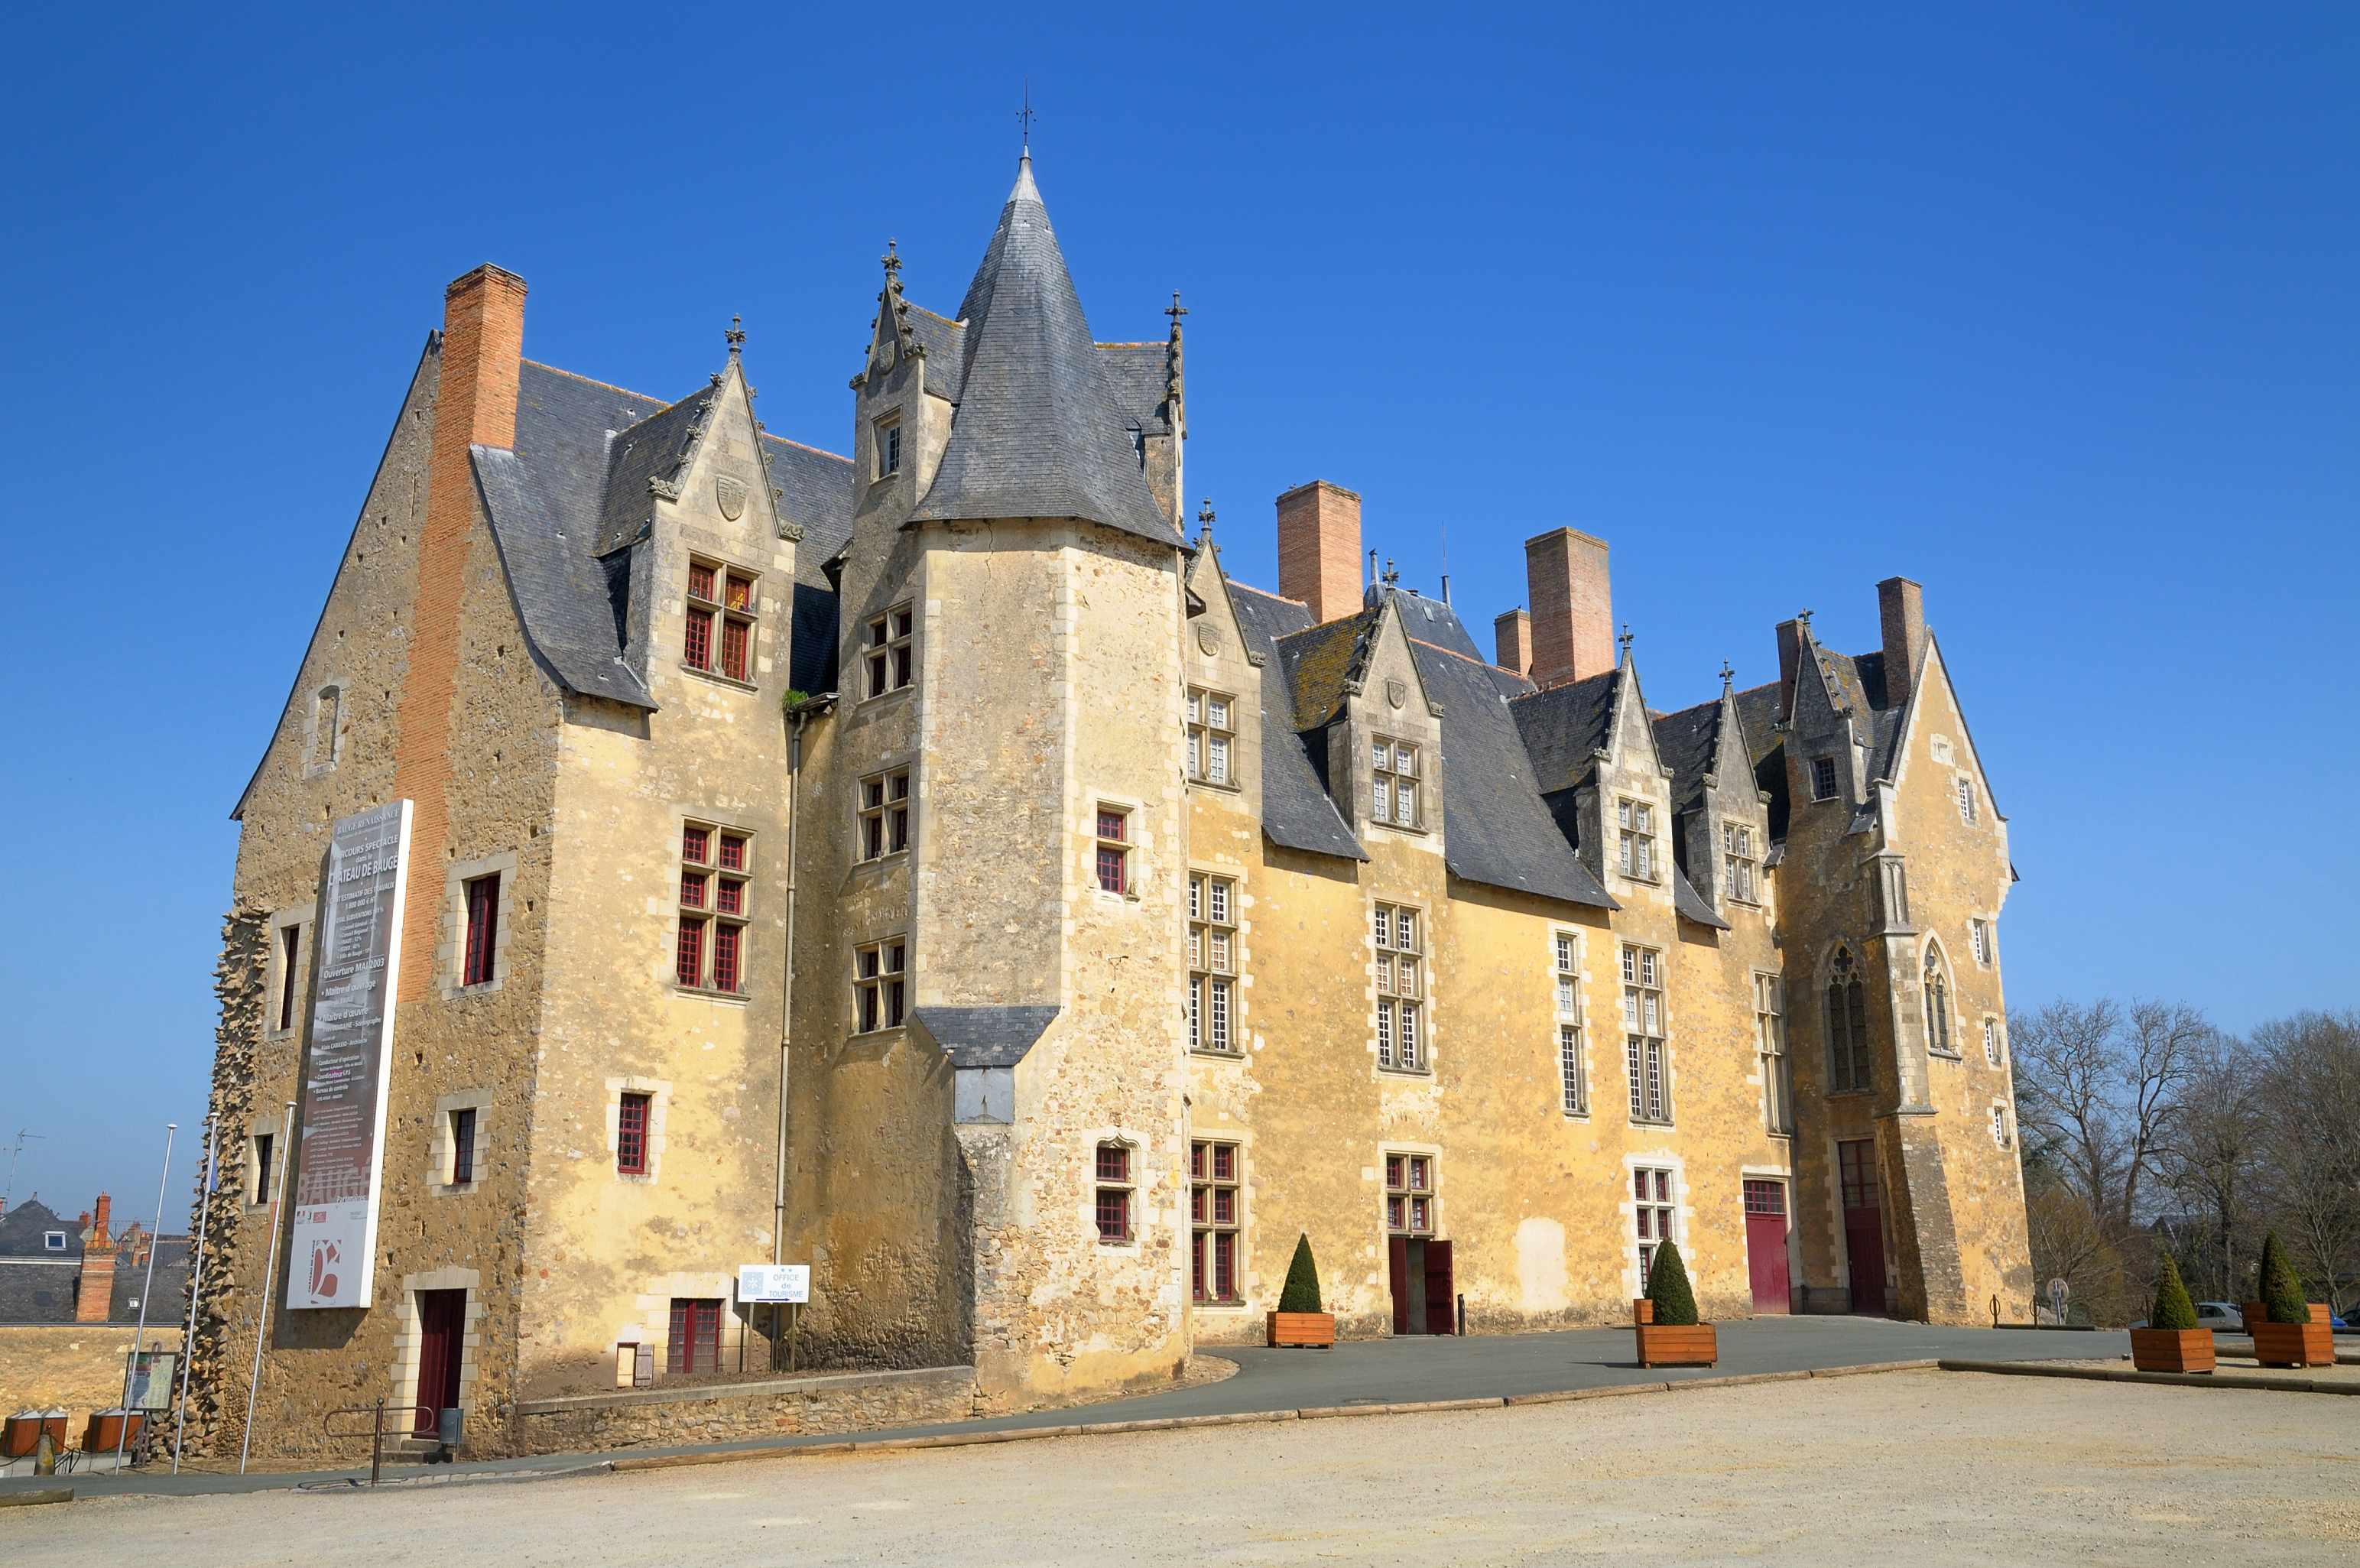 1-Chateau-de-Bauge-credit-photo-paillat--F-E-Gys.JPG